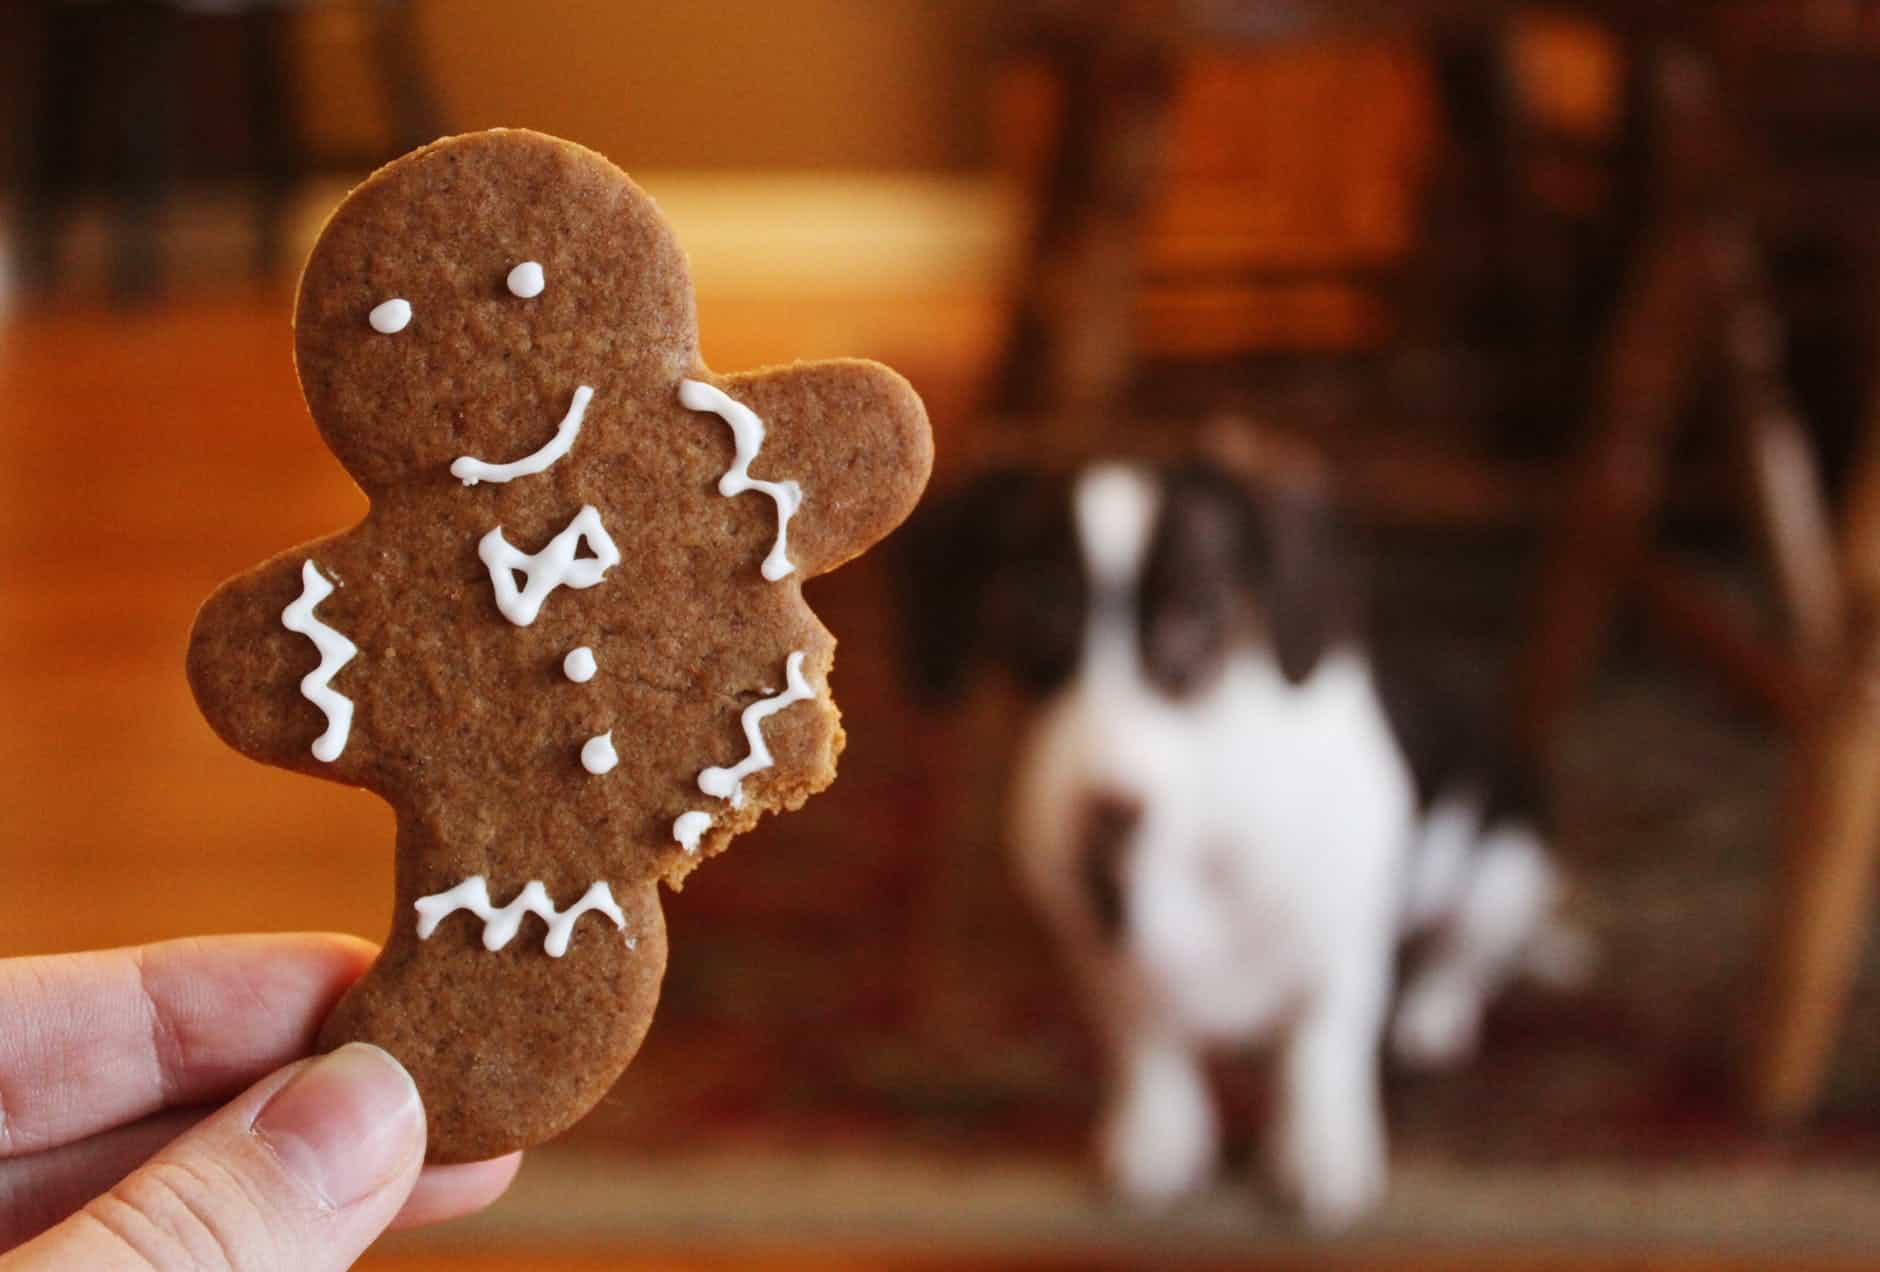 Why Is Gingerbread Man Always Present During Christmas?